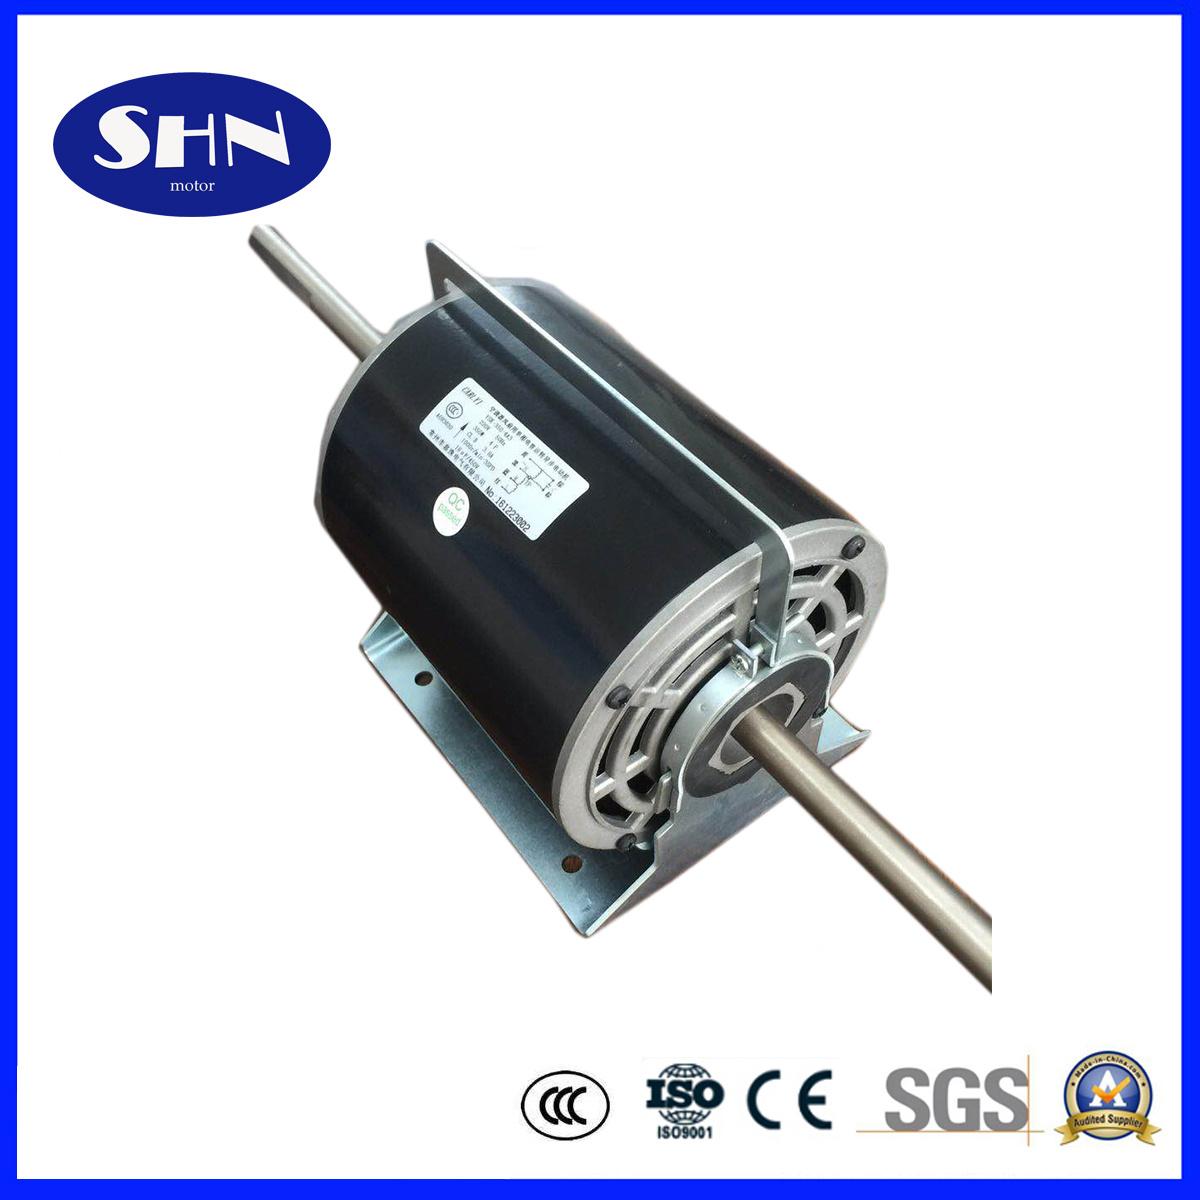 hight resolution of china 220v 120w double shaft multi speed fan coil unit motor china fan coil motor electrical motor